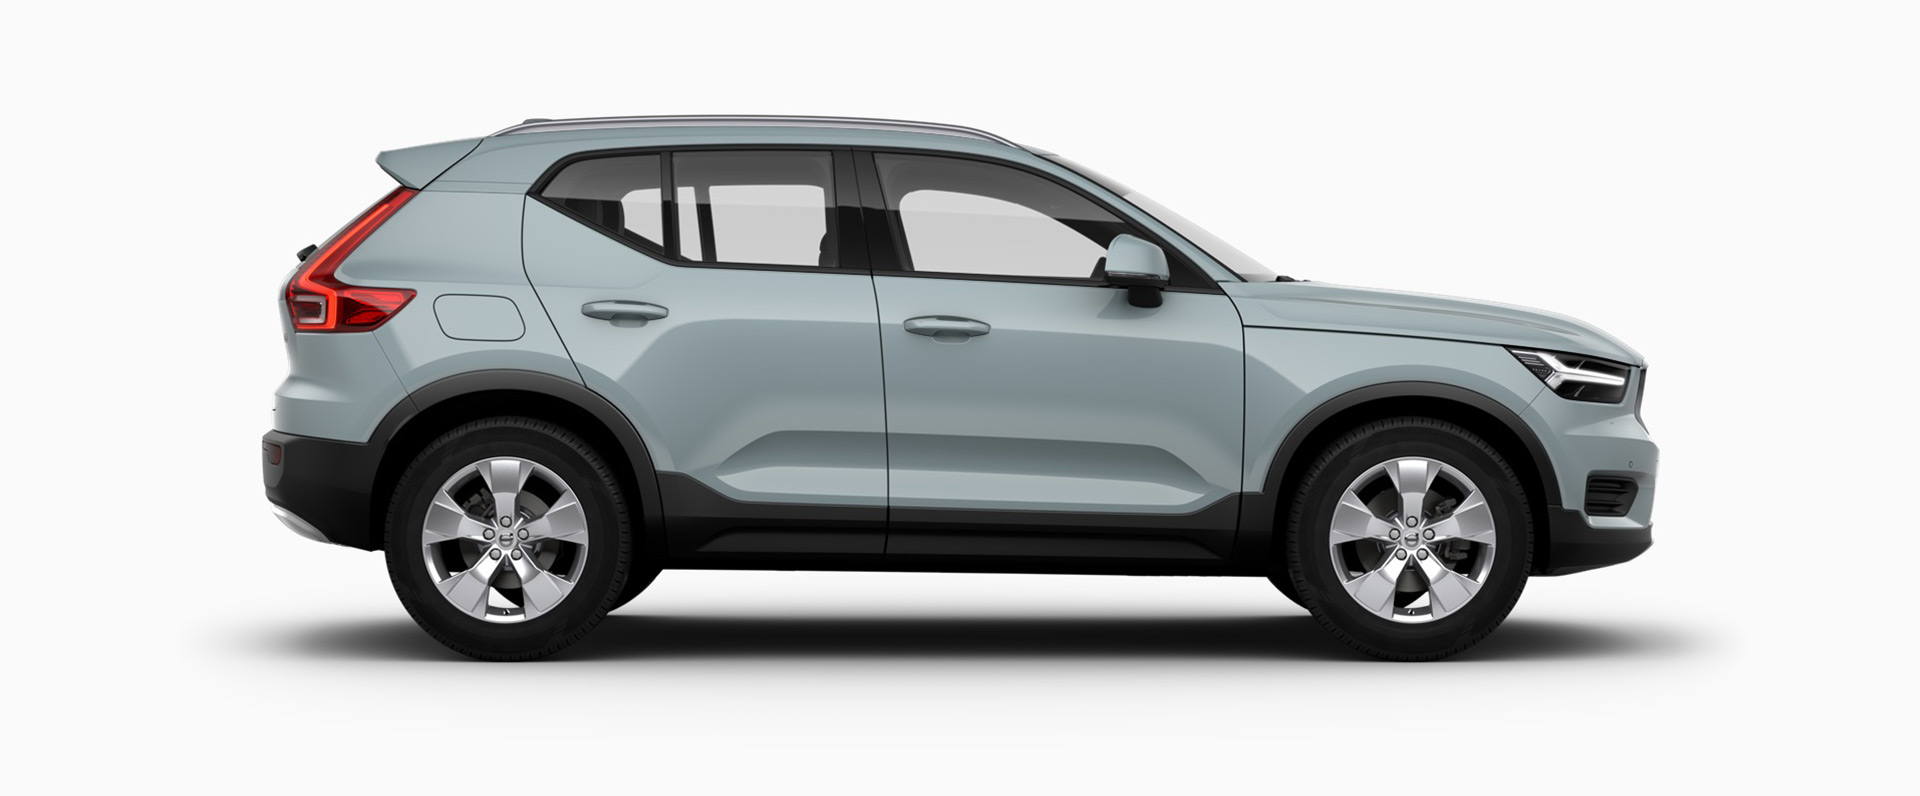 xc40-lateral